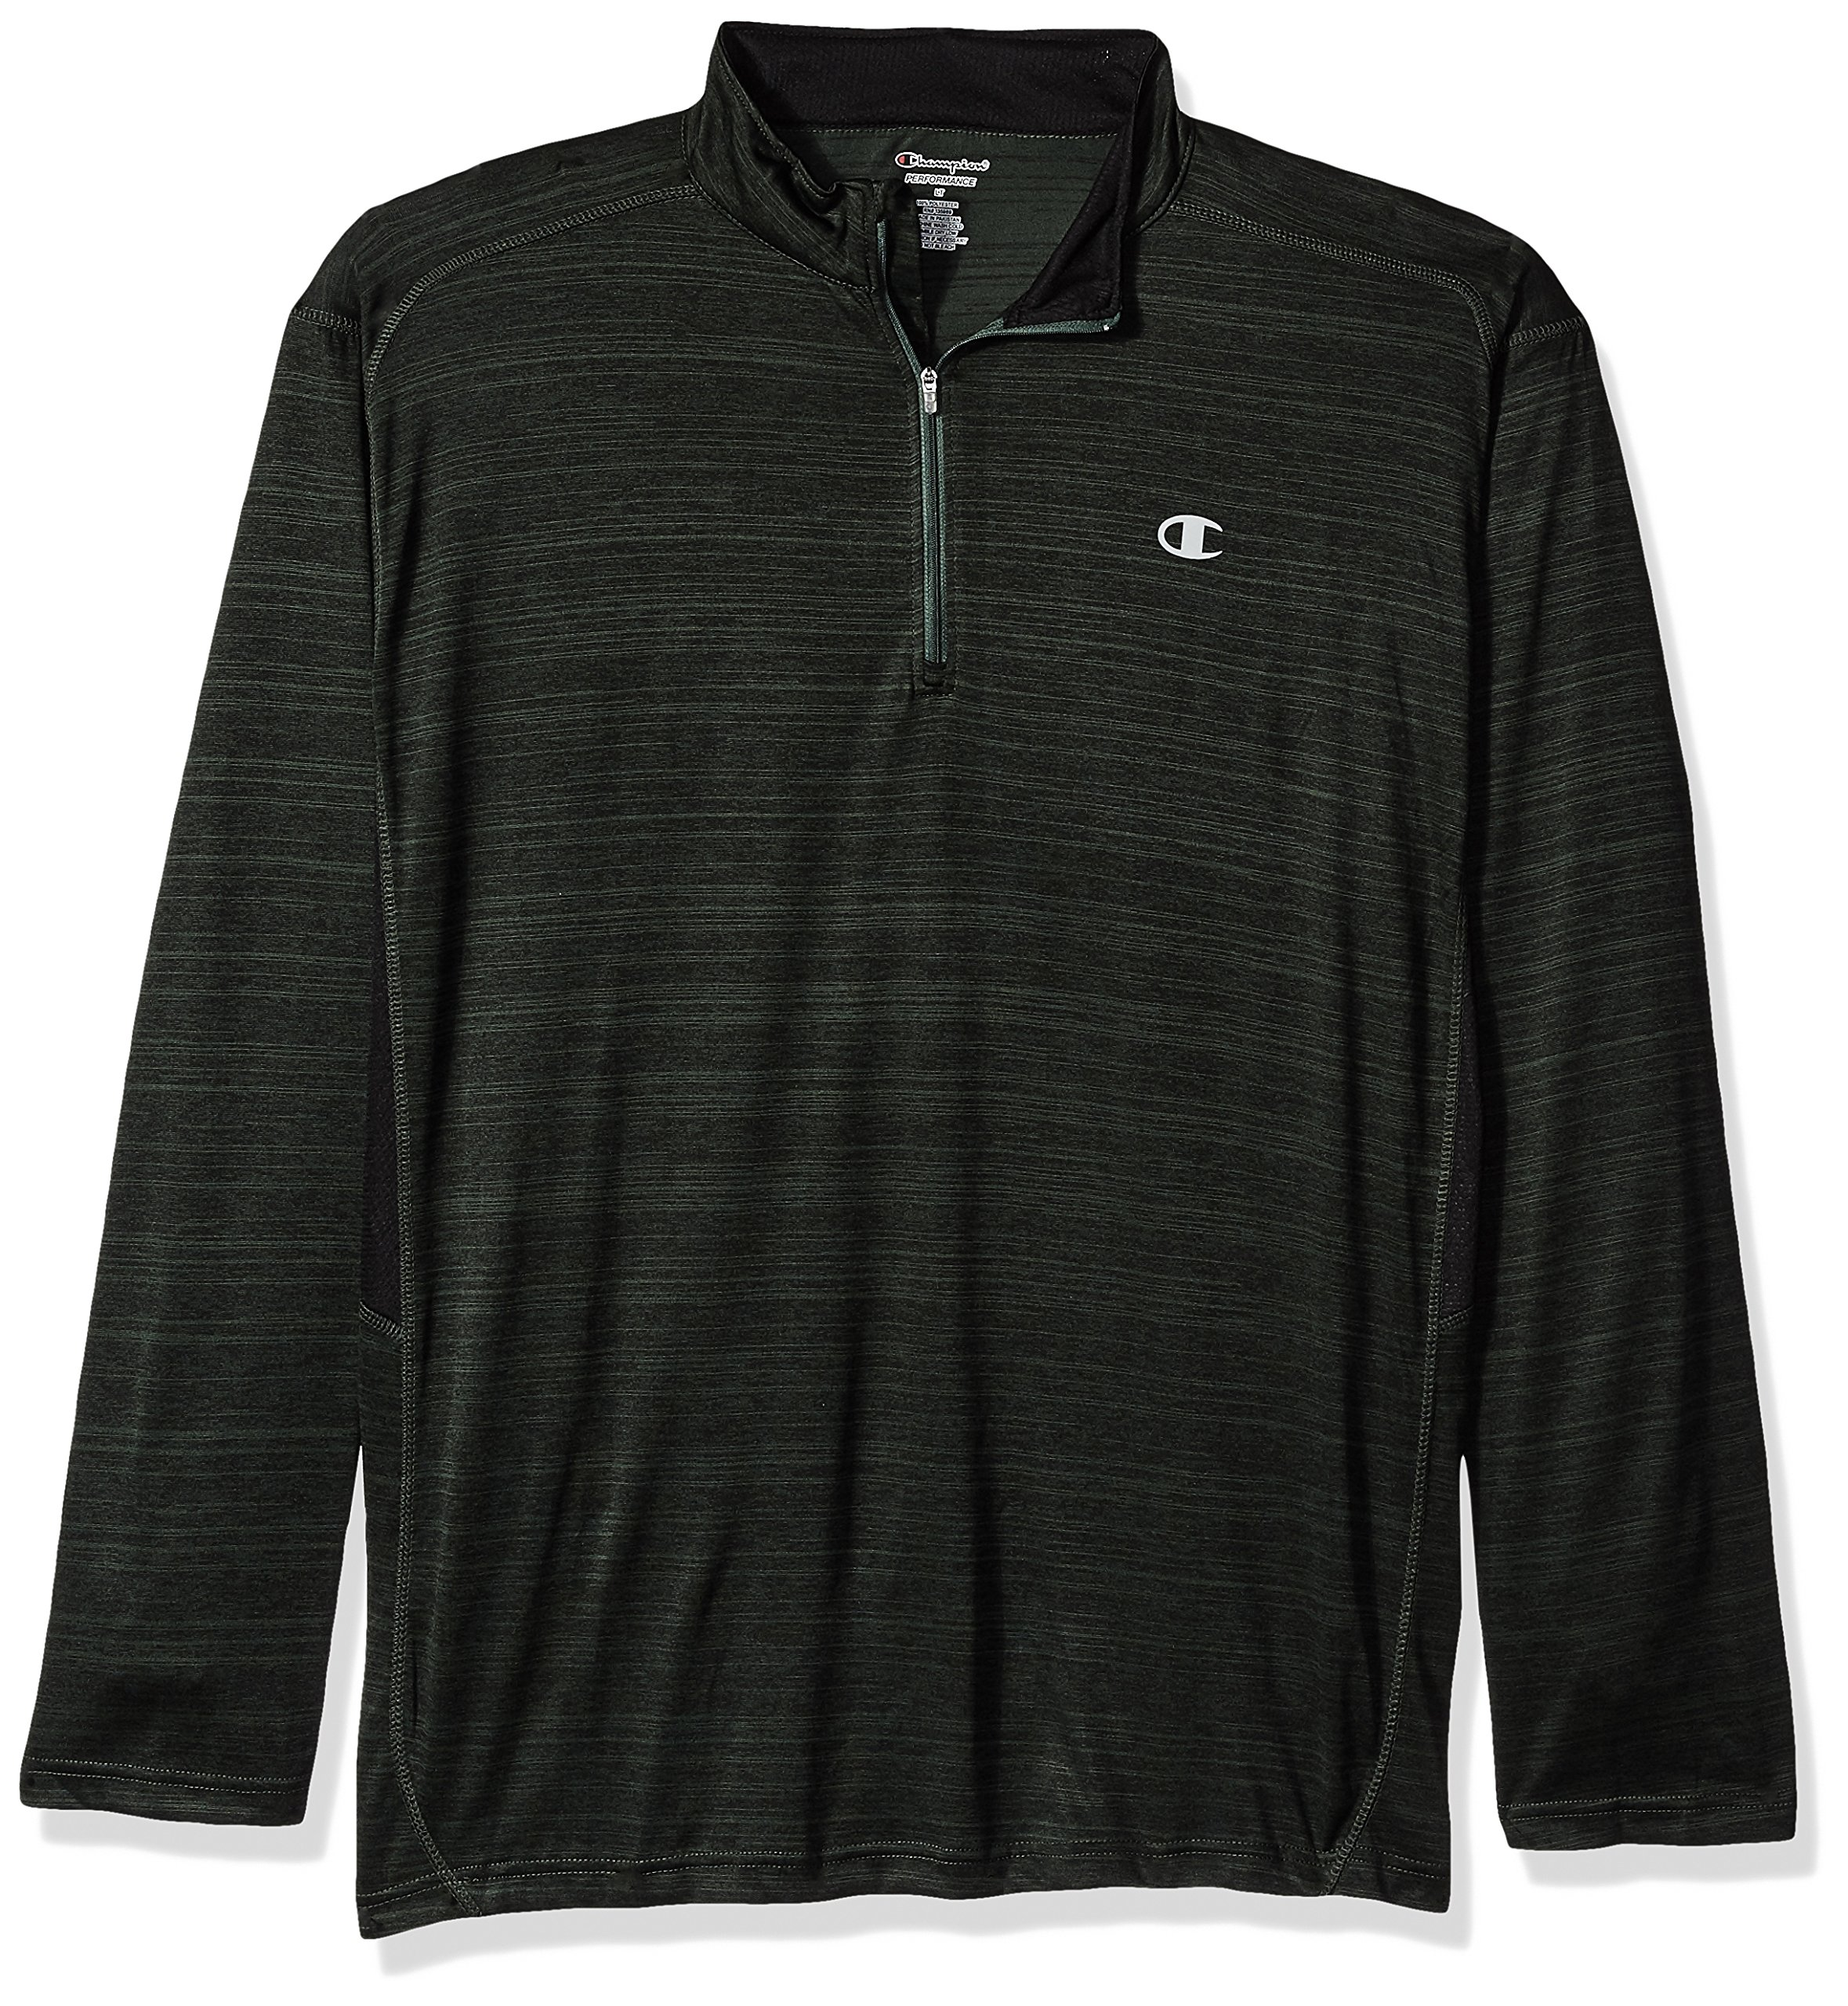 Champion Men's Big and Tall 1/4 Zip Pullover with Lc c, Forest/Black, 2X by Champion